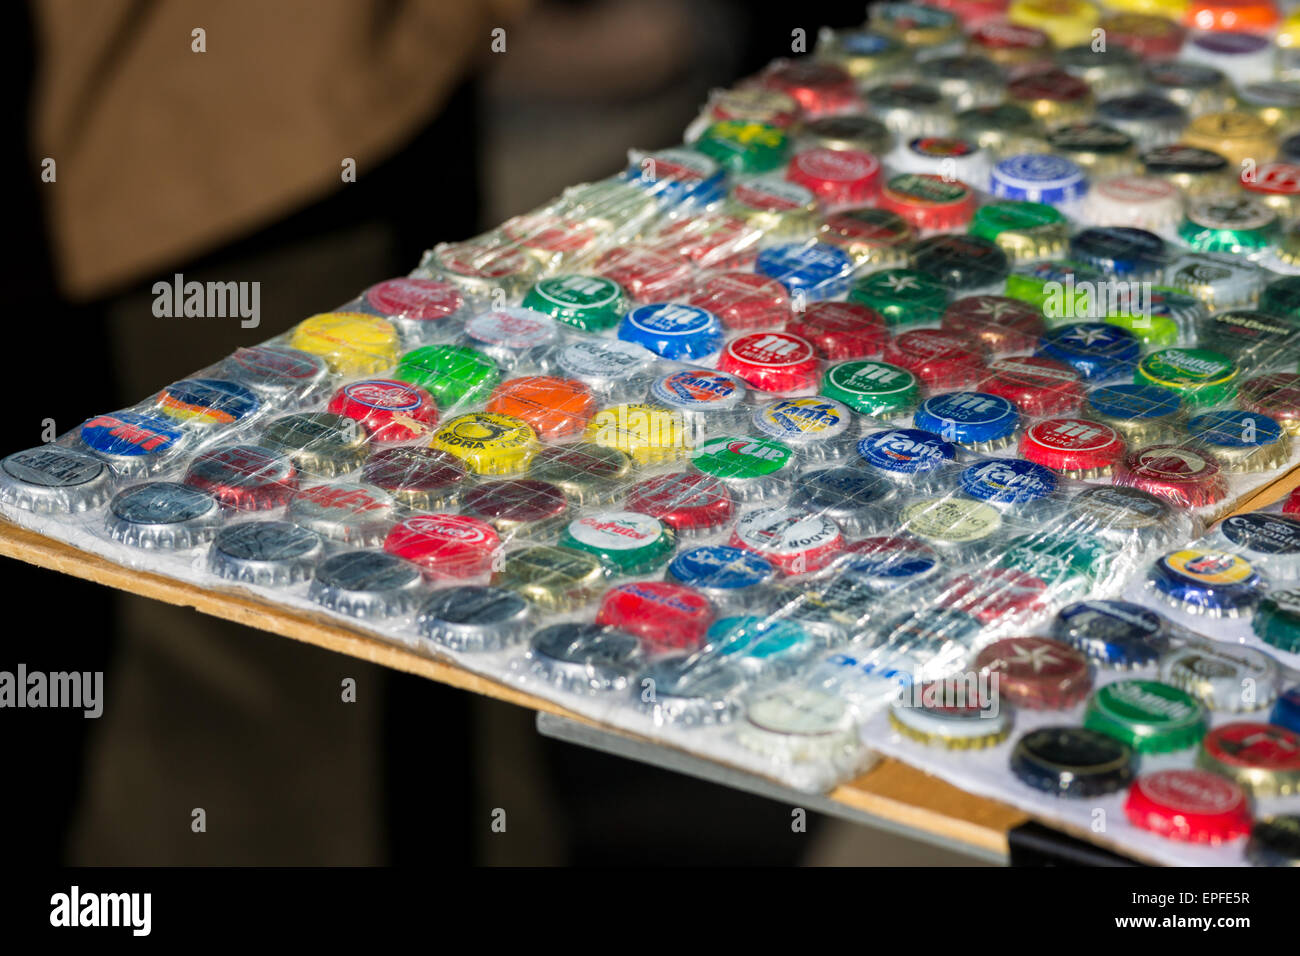 Bottle caps for sale at street market in Madrid - Stock Image